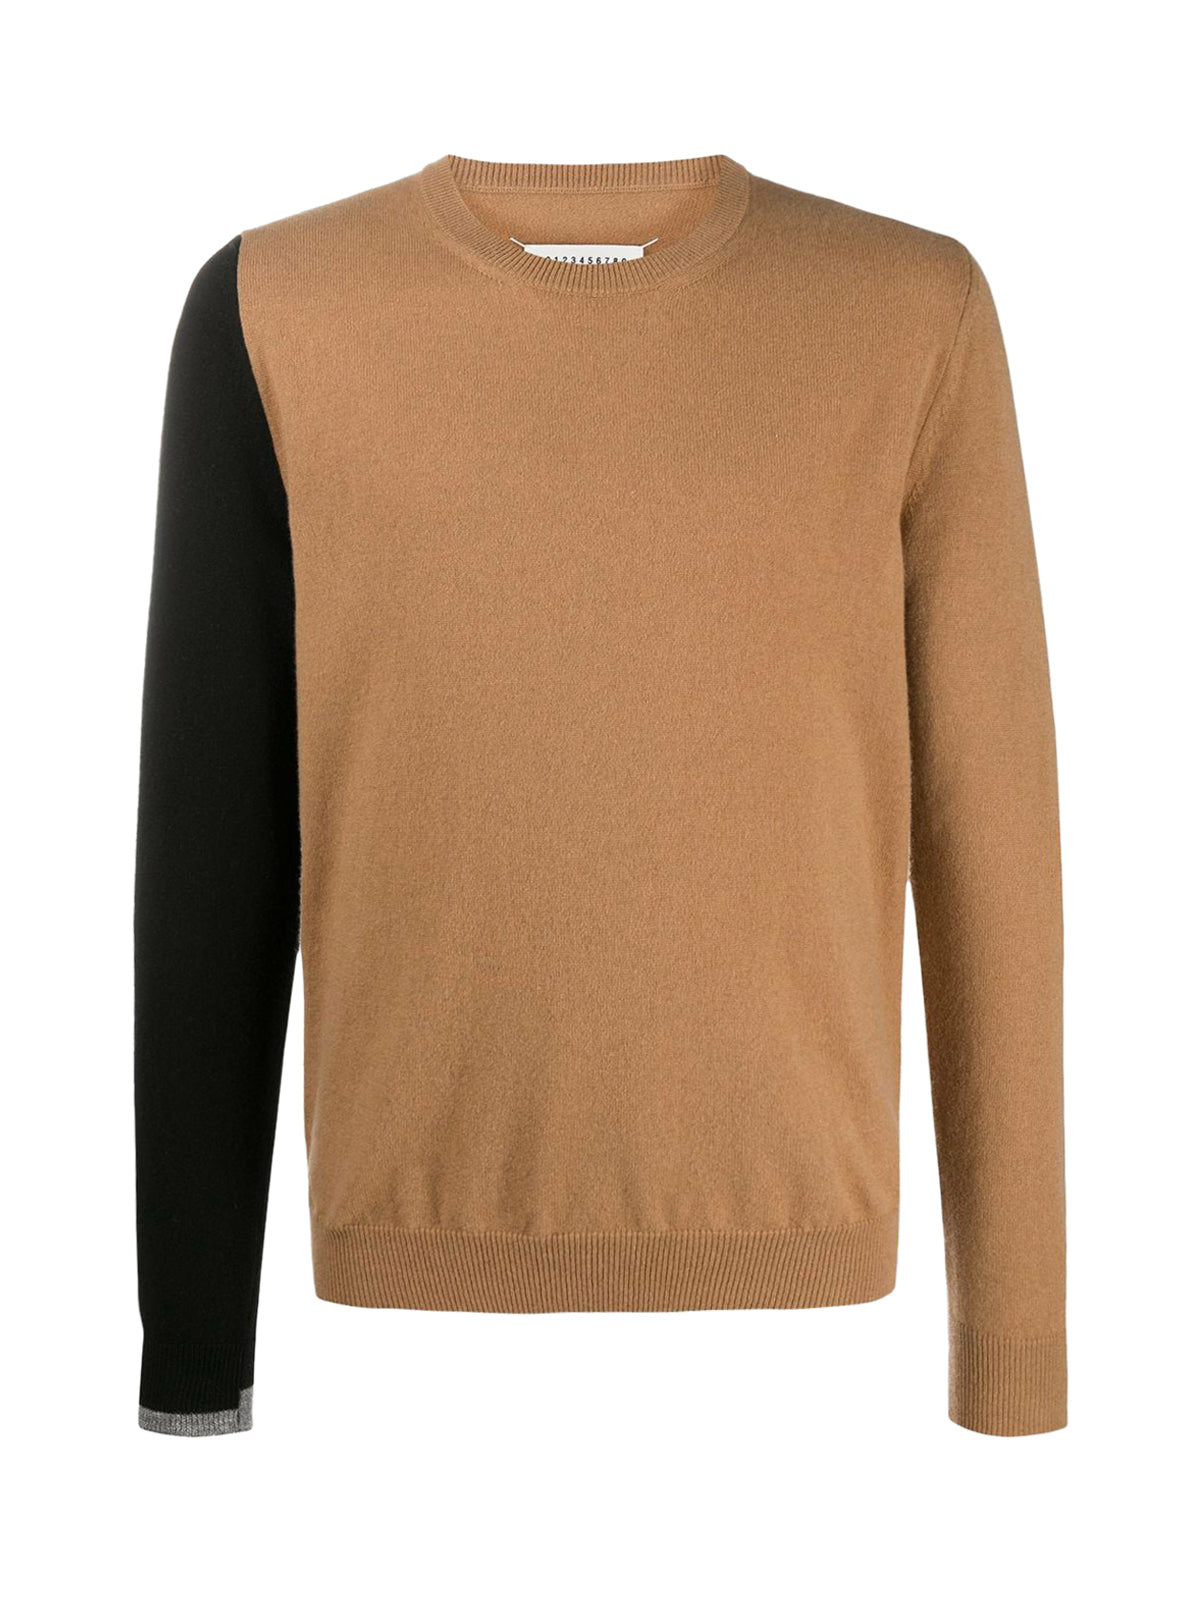 Round neck sweater with color-block design